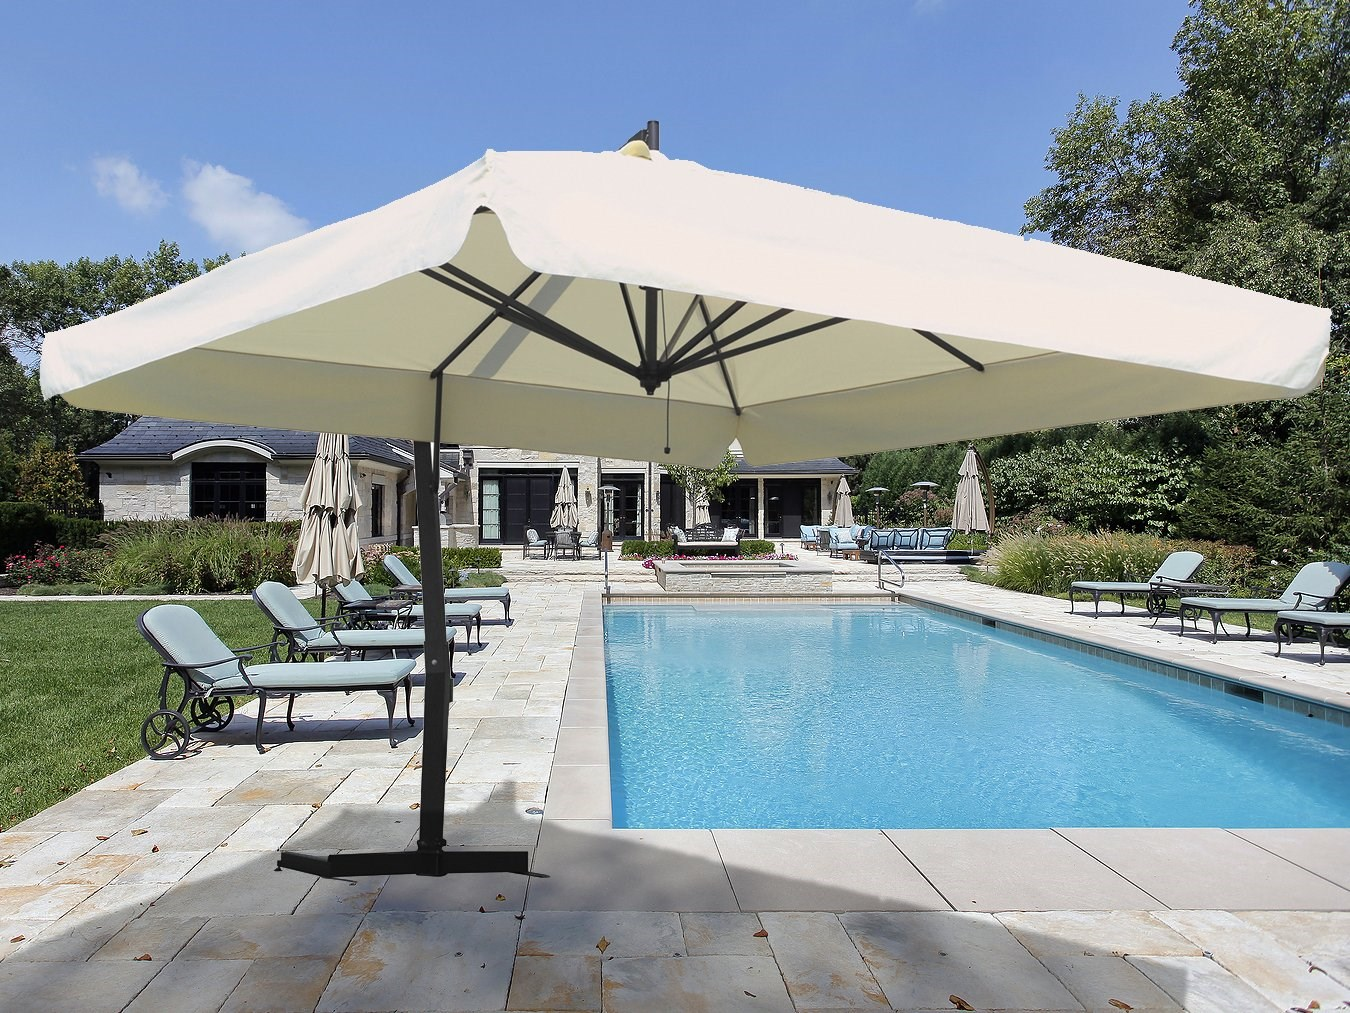 inspiring cantilever patio umbrella in white with black stand near the swimming pool ideas